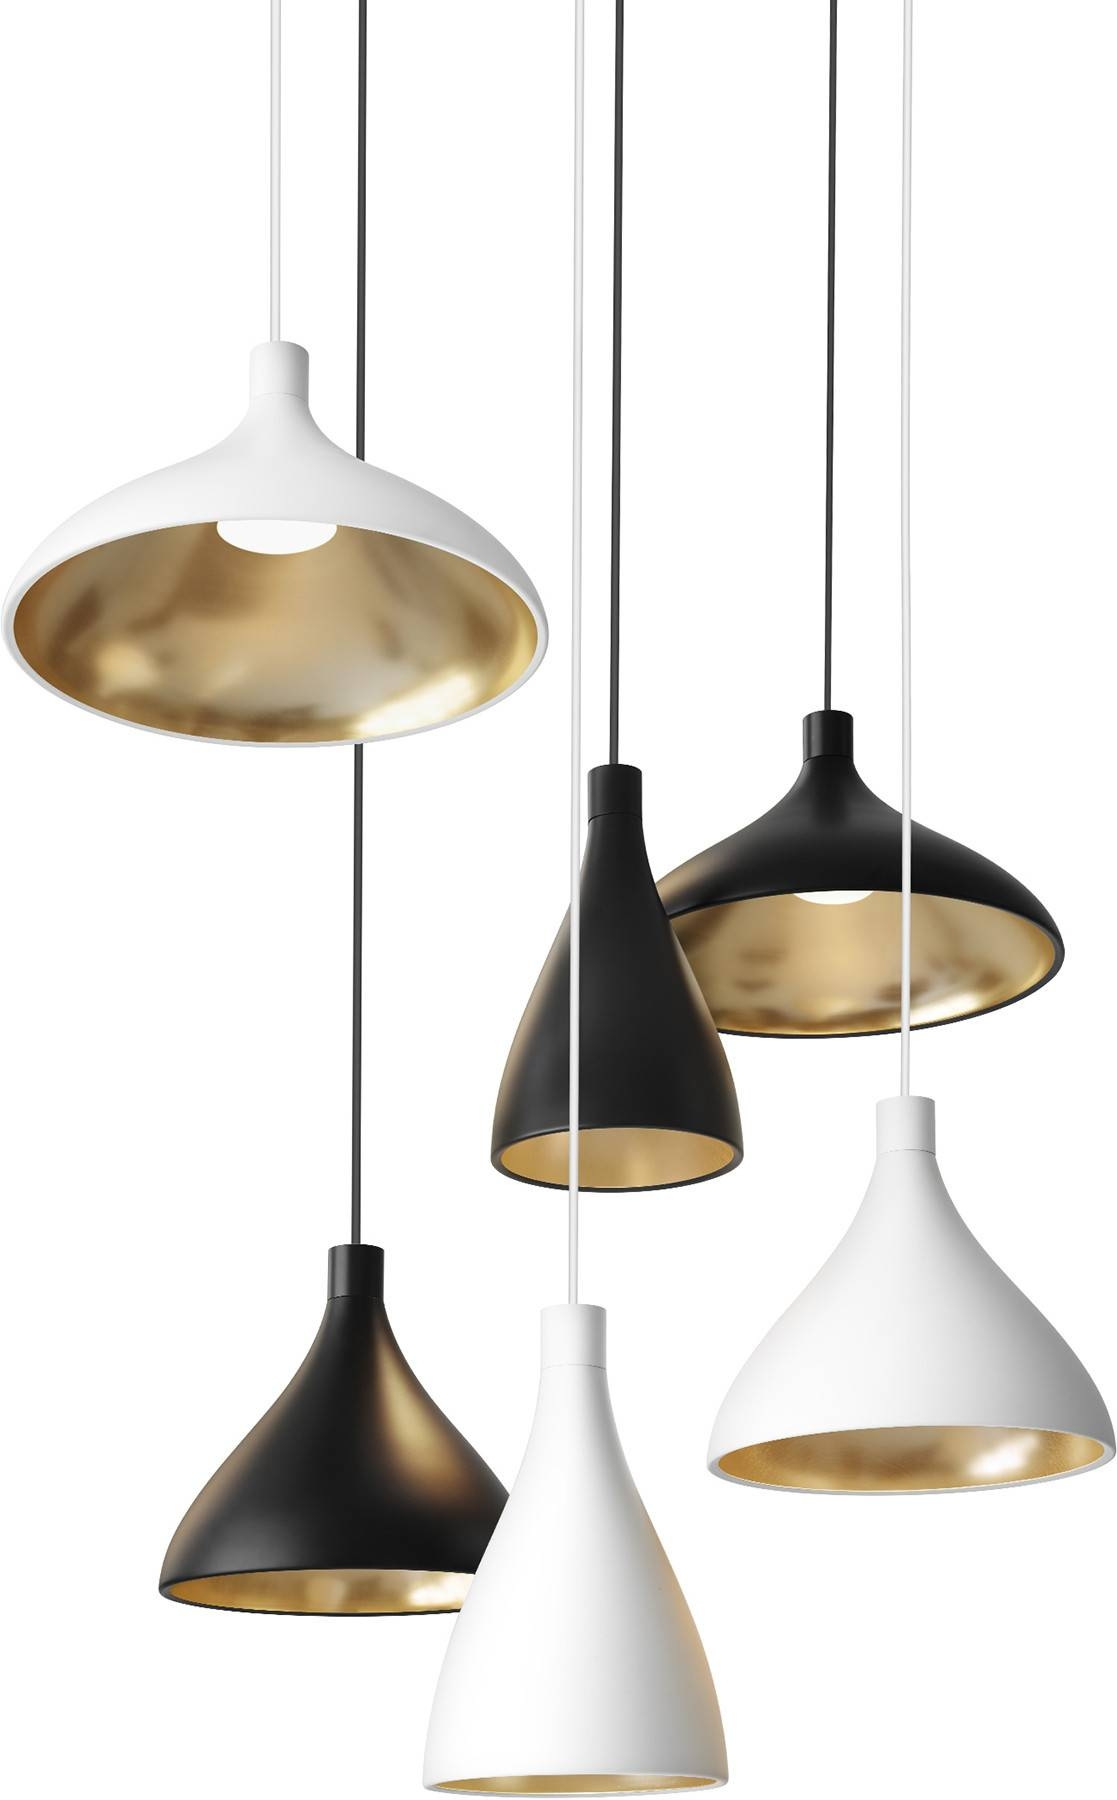 Astonishing Contemporary Pendant Lighting 90 On Short Pendant pertaining to Short Pendant Lights Fixtures (Image 2 of 15)